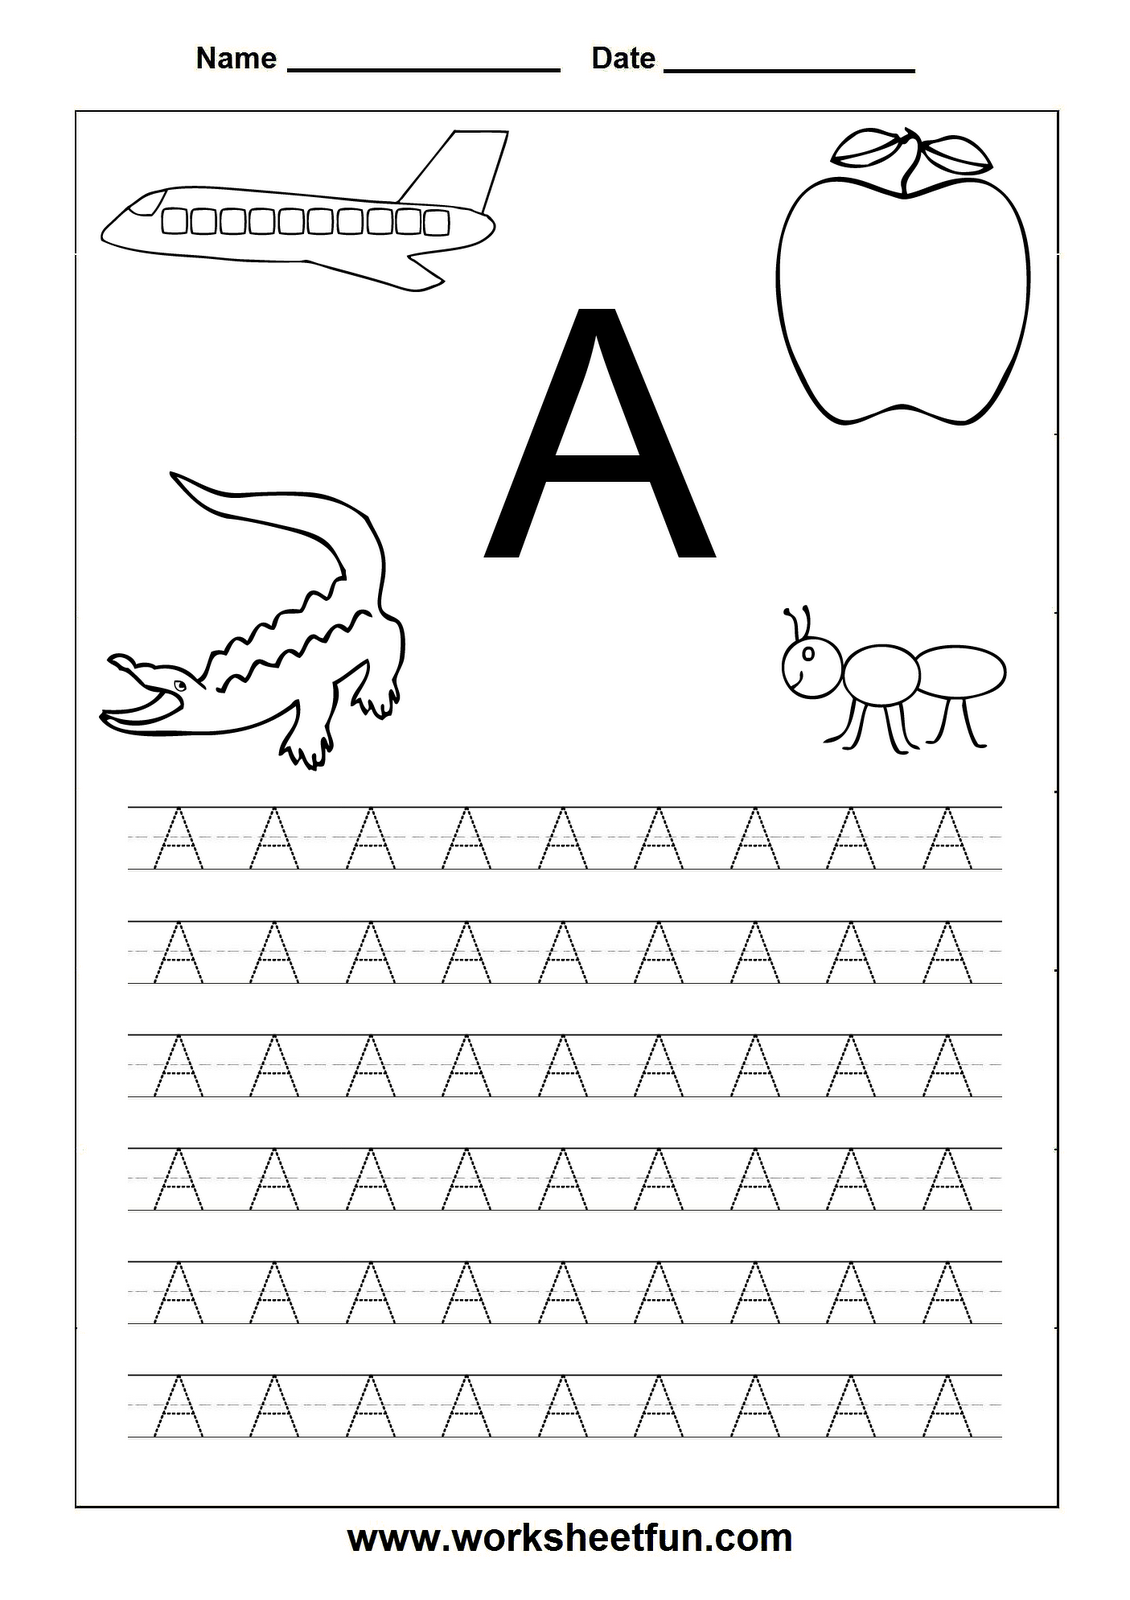 A-Z: Capital Letter Tracing Worksheets | PRESCHOOL PRINTABLES ...